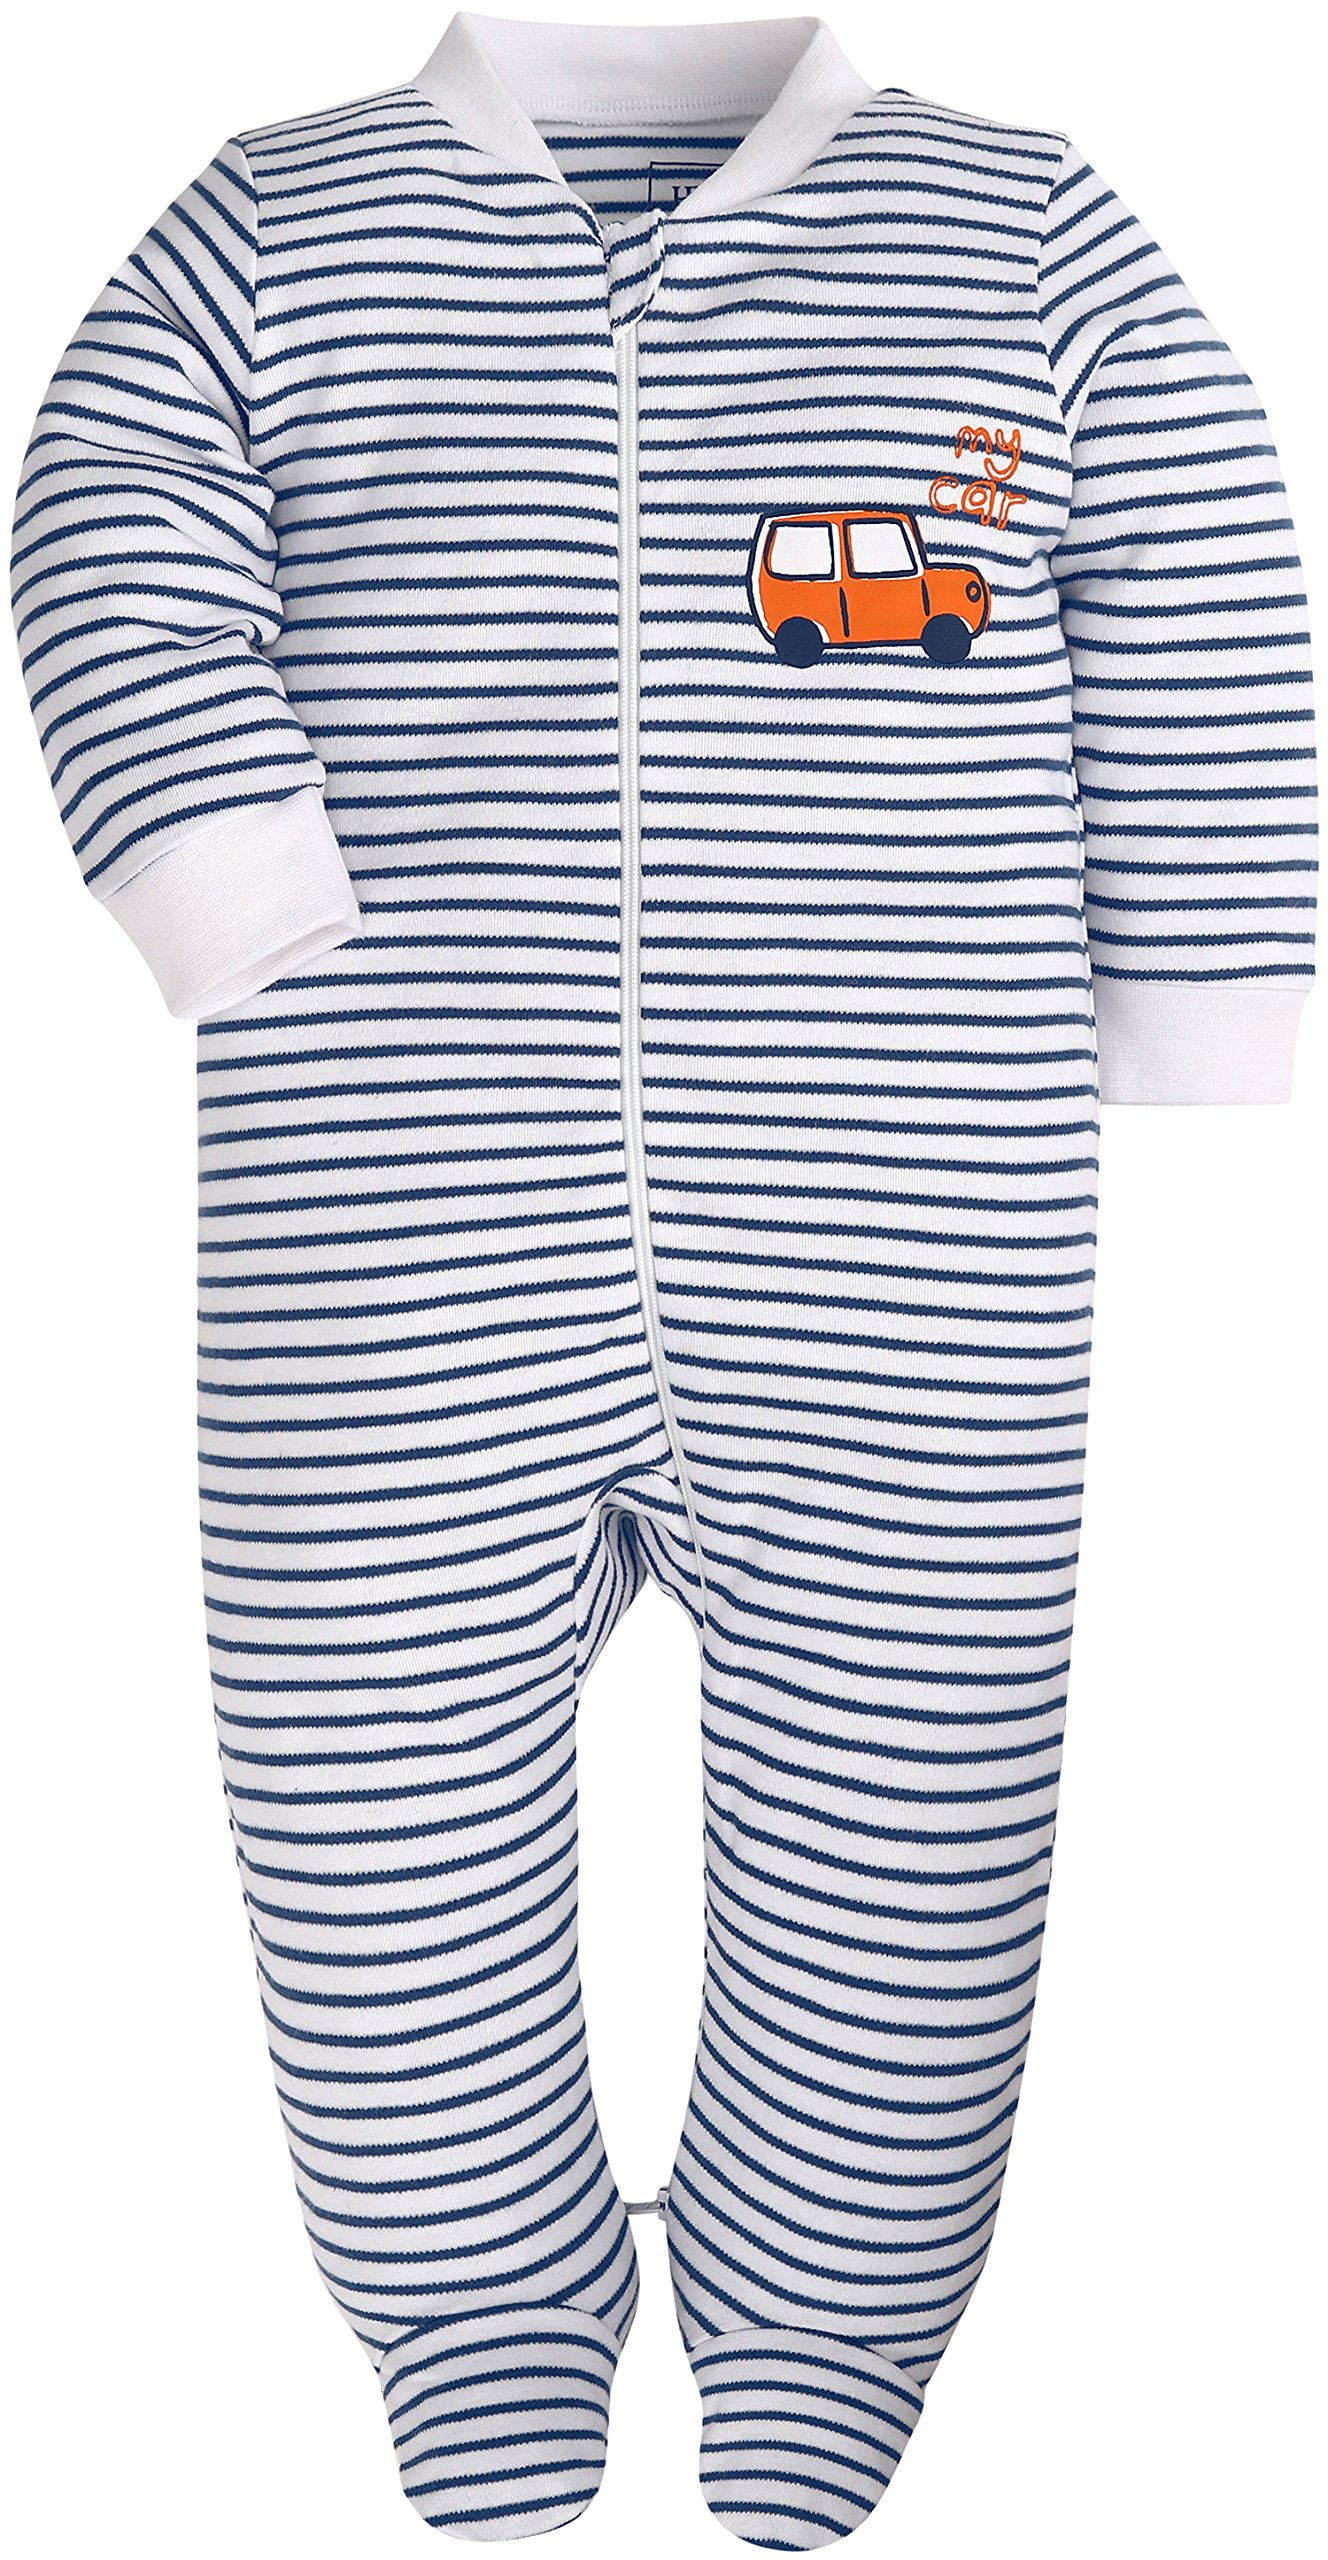 Baby Boys'2 Pack Footed Sleeper Yarn-Dyed Striped Baby Pajamas Set (Blue Dog/Grey Car, 18-24 Months) by SHENGWEN (Image #3)